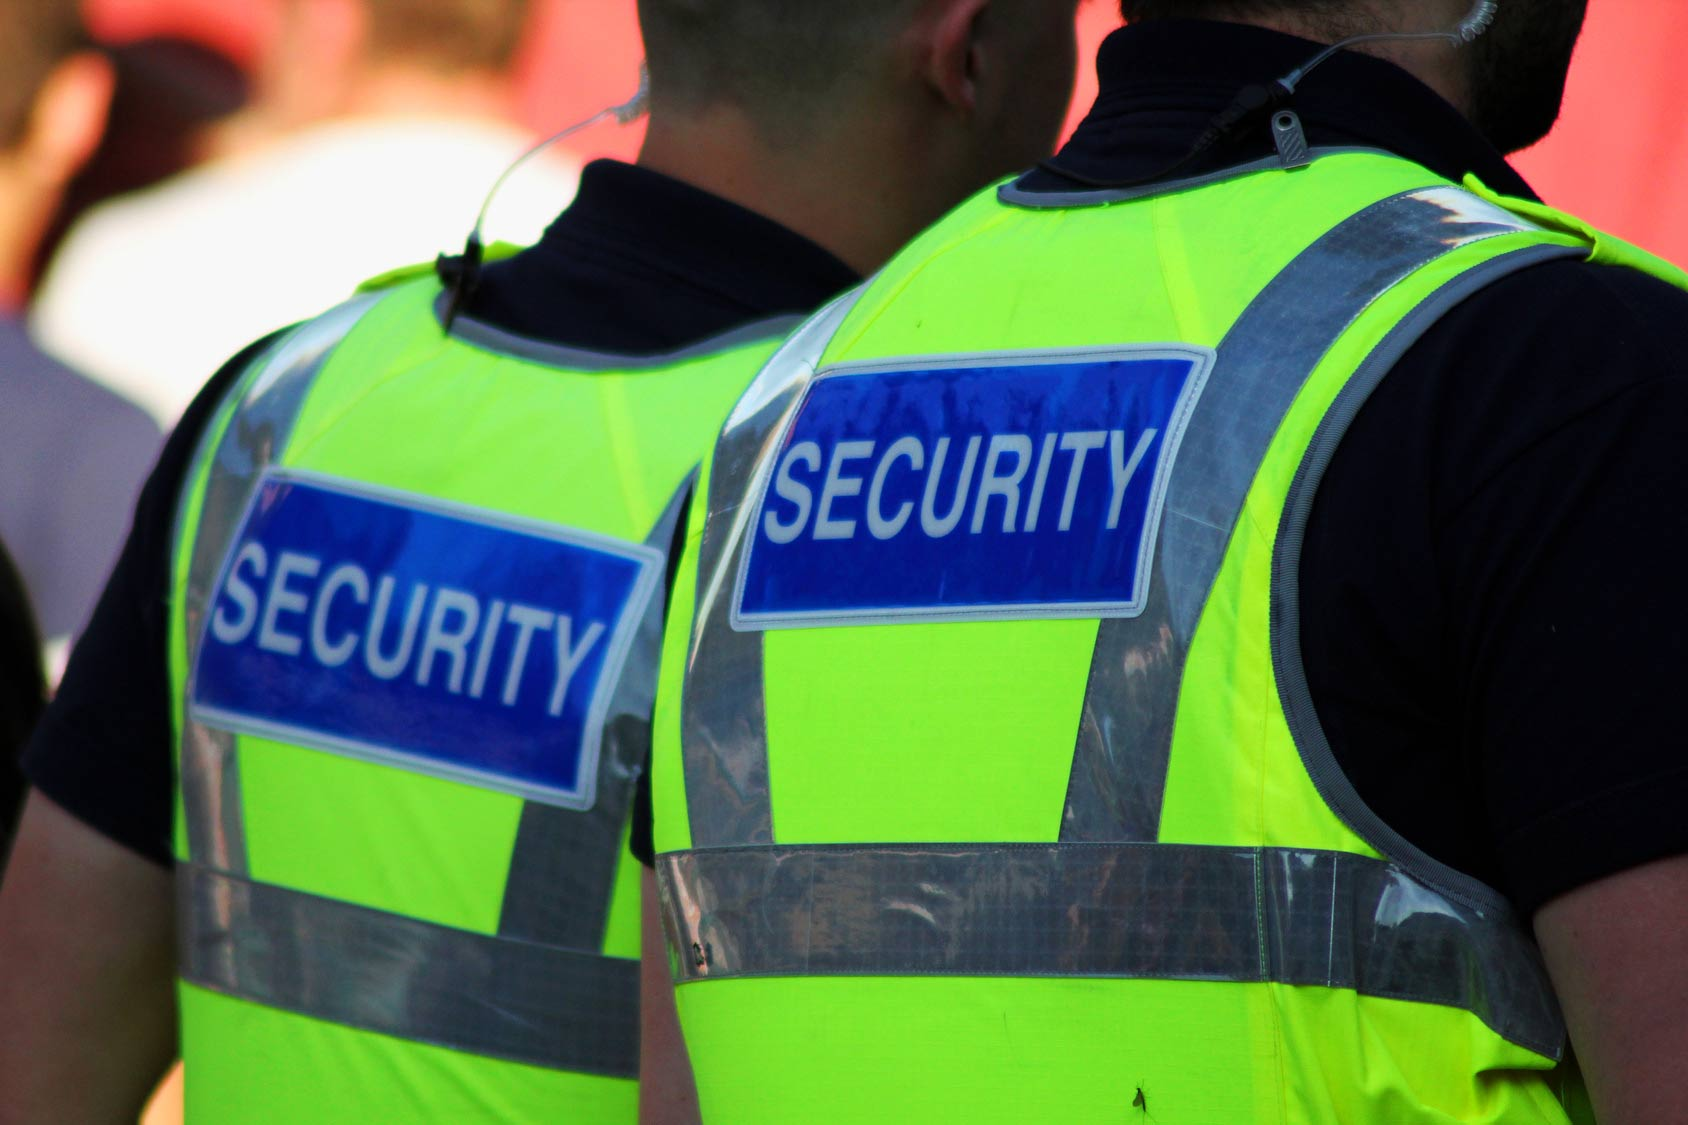 Manned Guarding Services UK